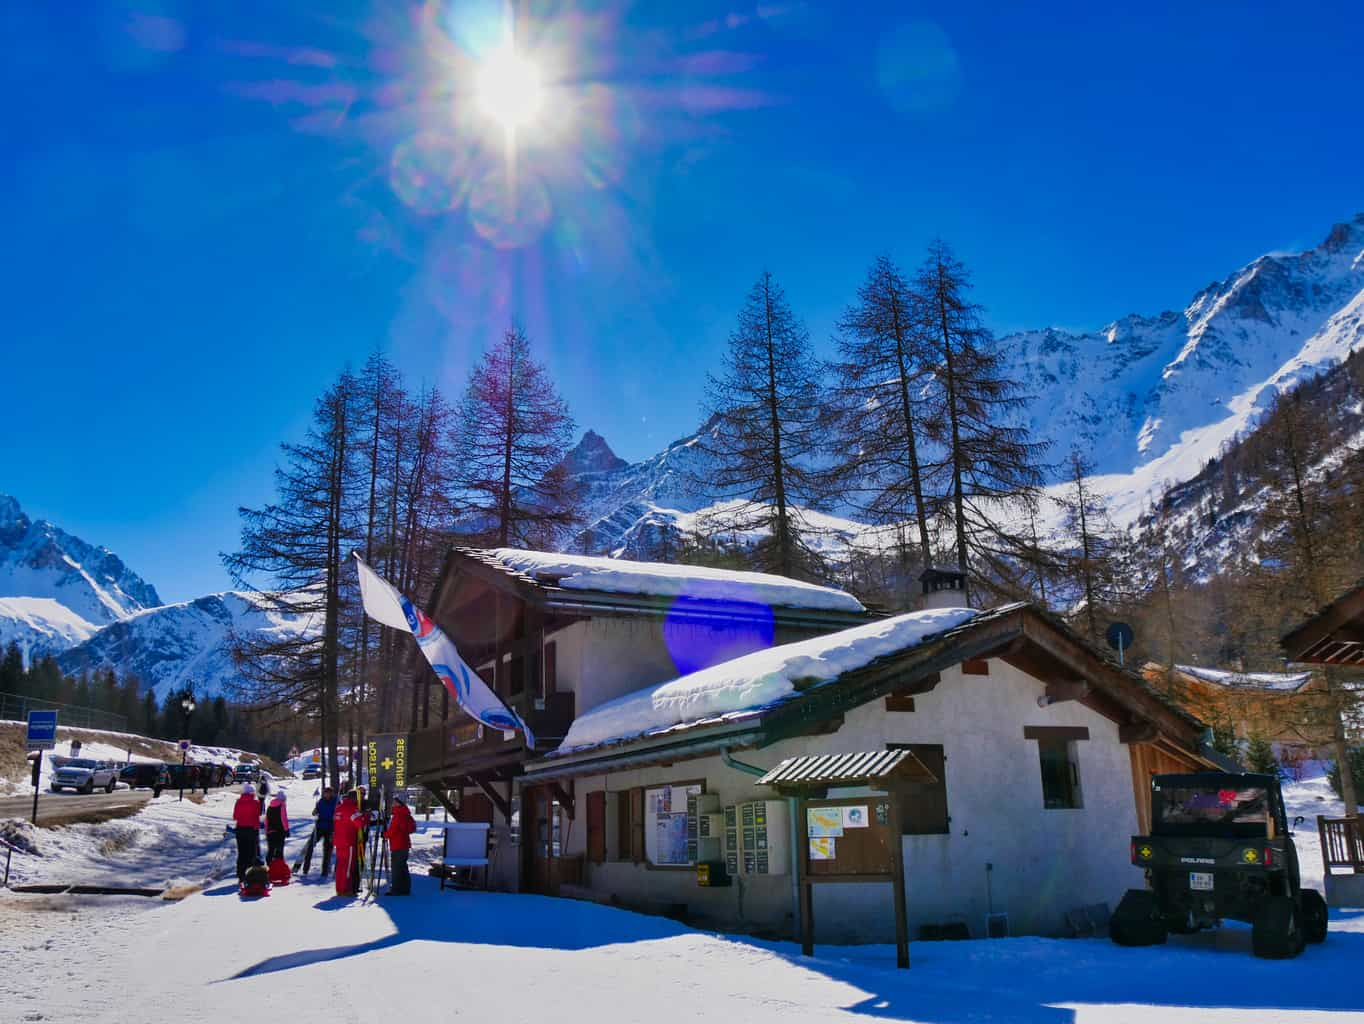 Building surrounded by snow with snowy mountains in the background and deep blue sky